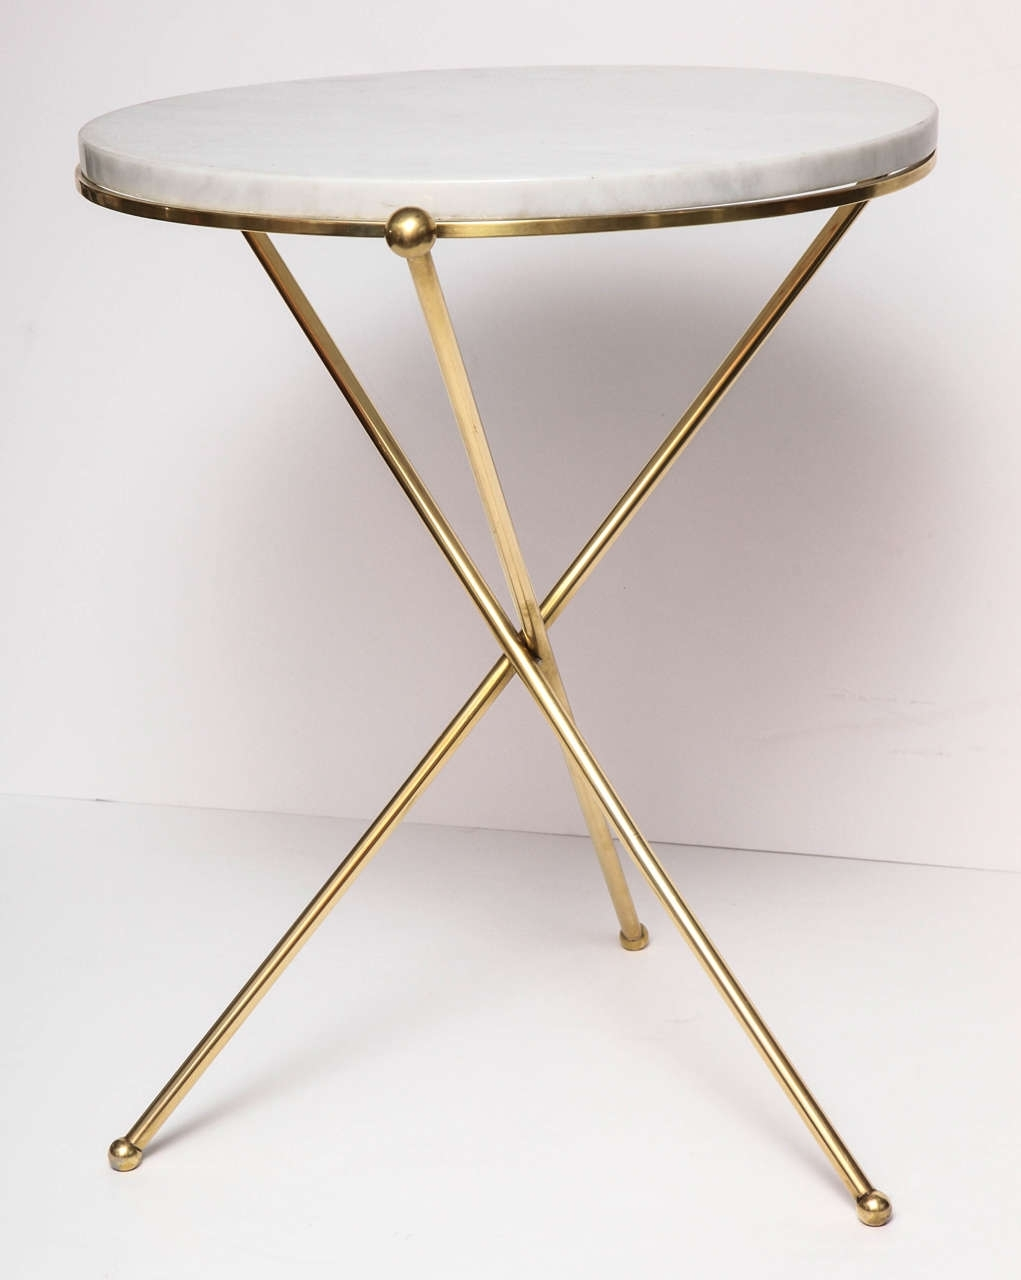 Pleasant Idea Marble Brass Side Table Tripod And At 1Stdibs Antique Pertaining To Smart Round Marble Brass Coffee Tables (View 24 of 30)